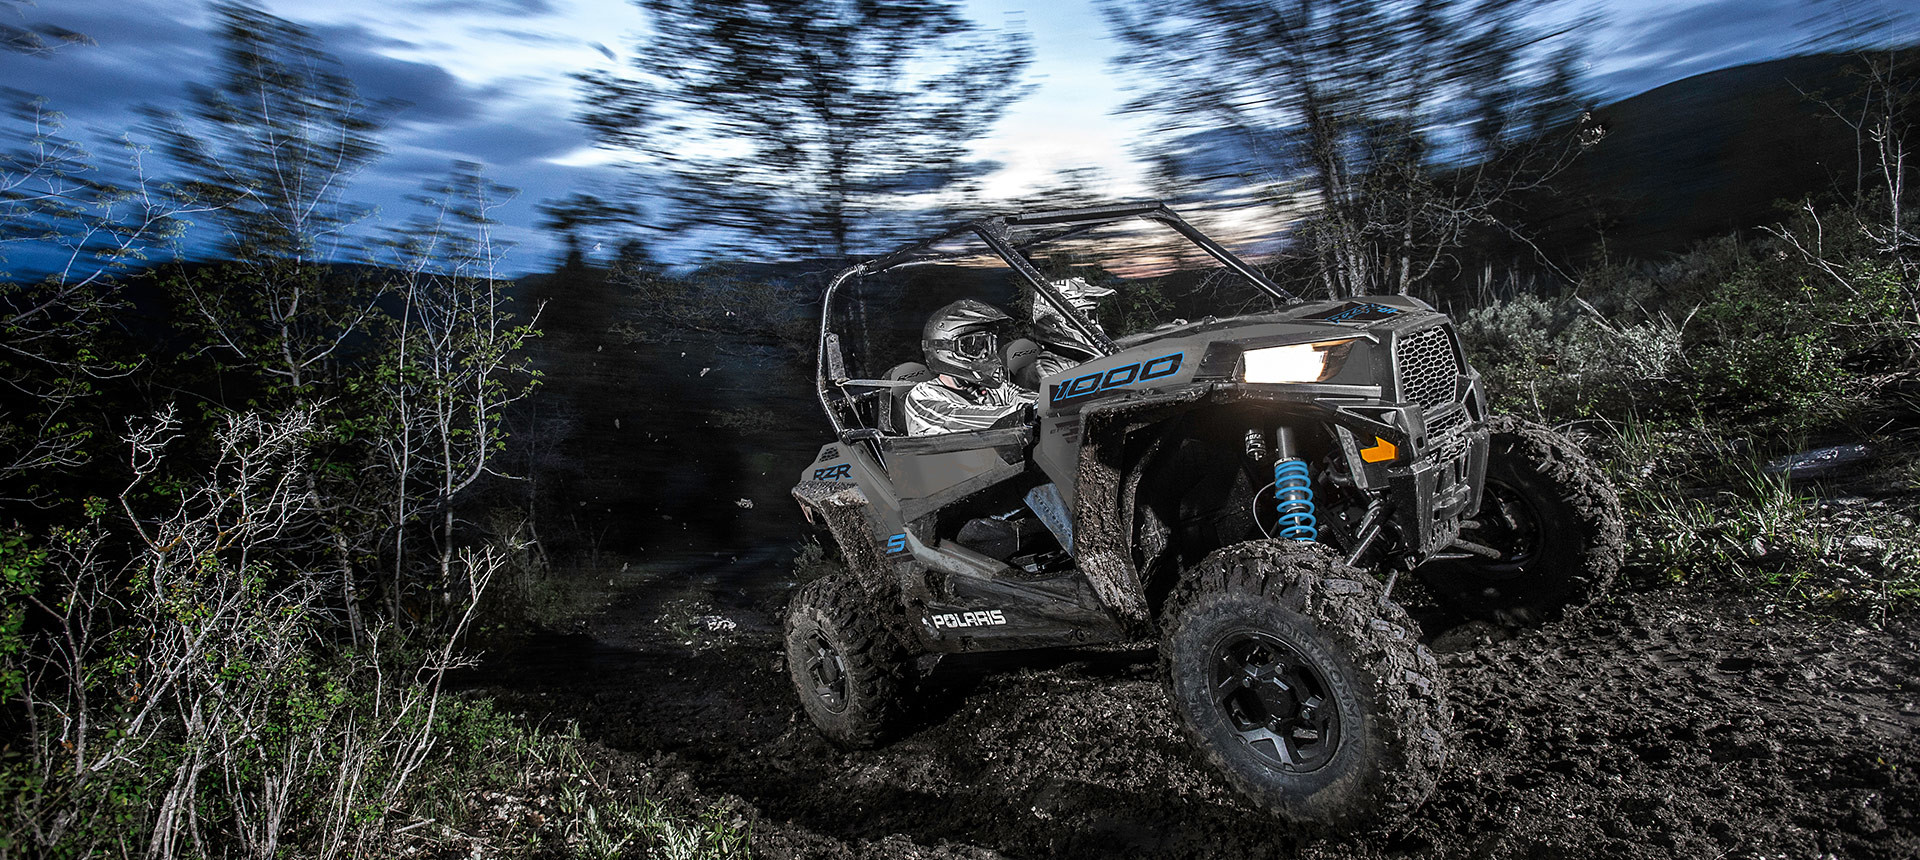 2020 RZR<sup>®</sup> Trail S 1000 Instagram image 6